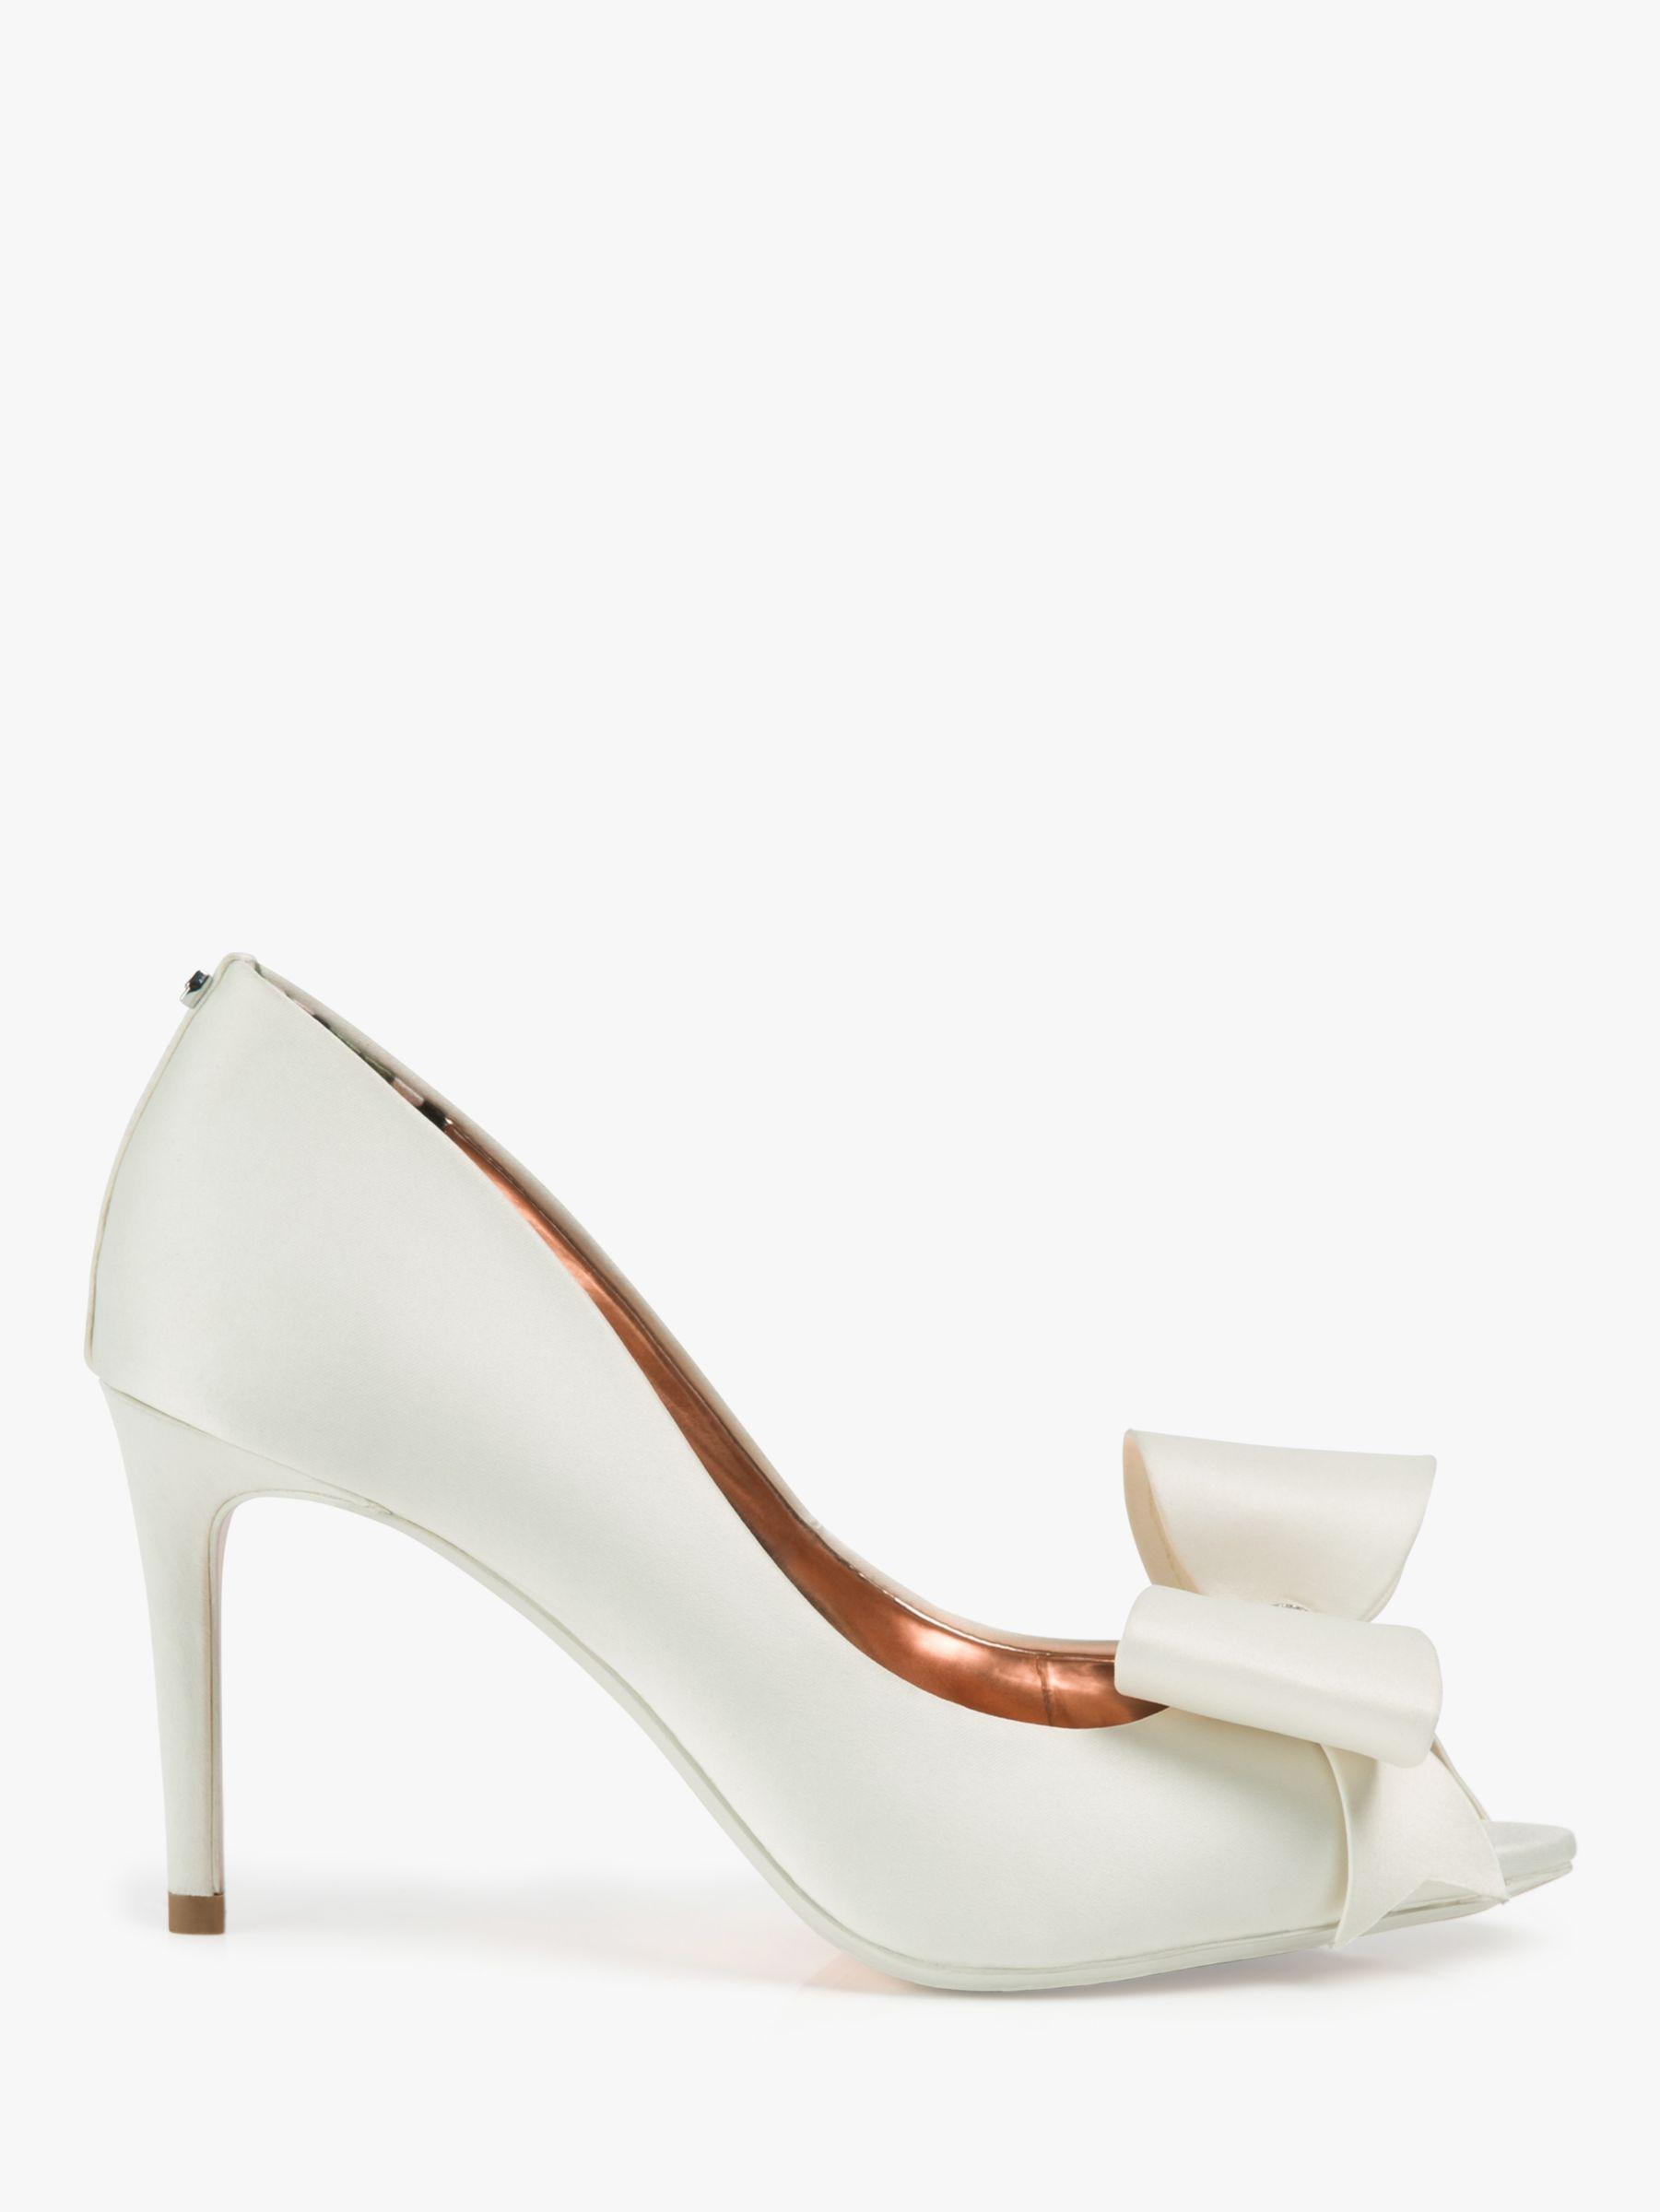 287d1b1ed20 Ted Baker Nualas Bow Heel Court Shoes in White - Save 20% - Lyst